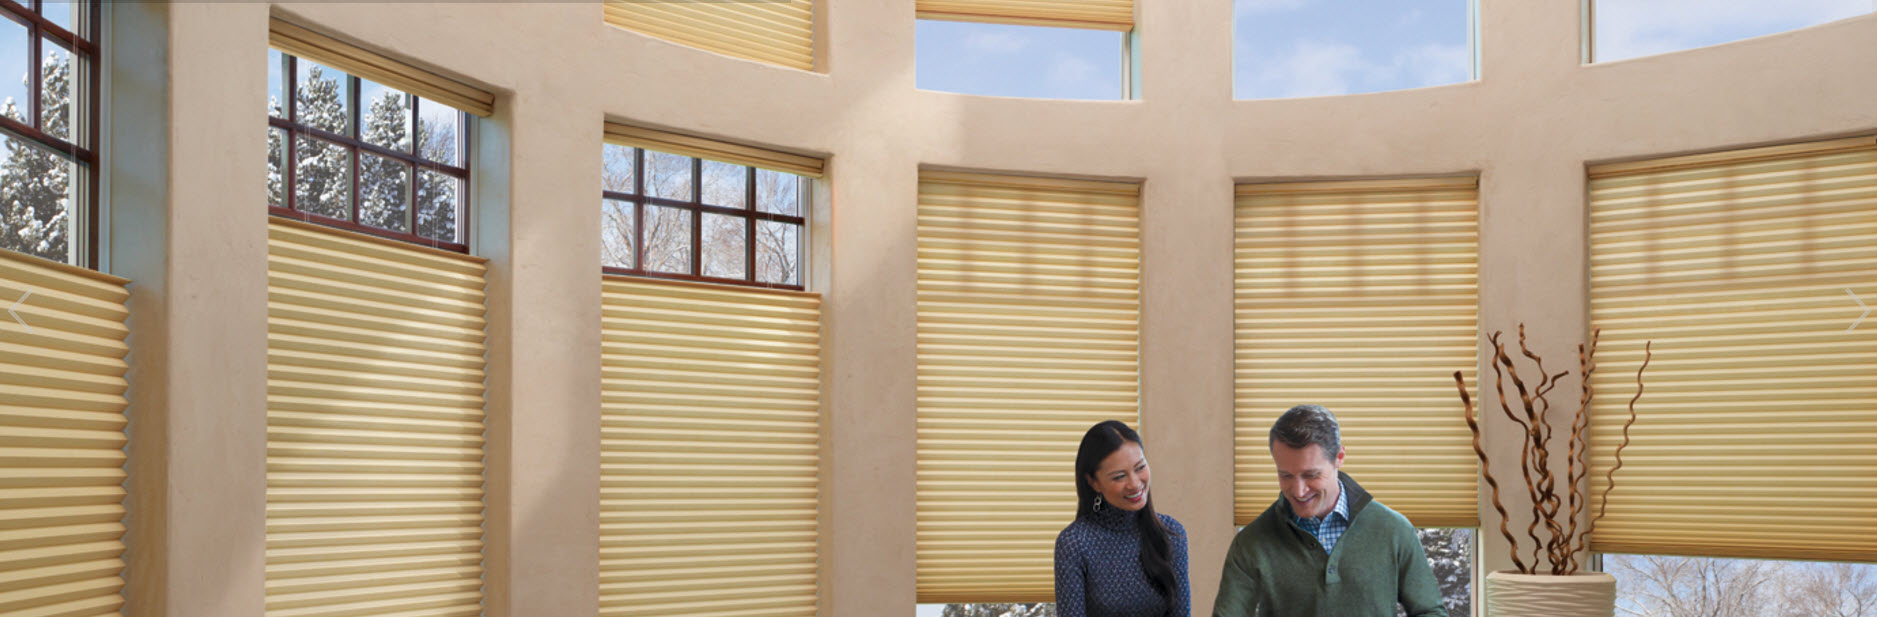 pictures custom interior shutters in blinds california